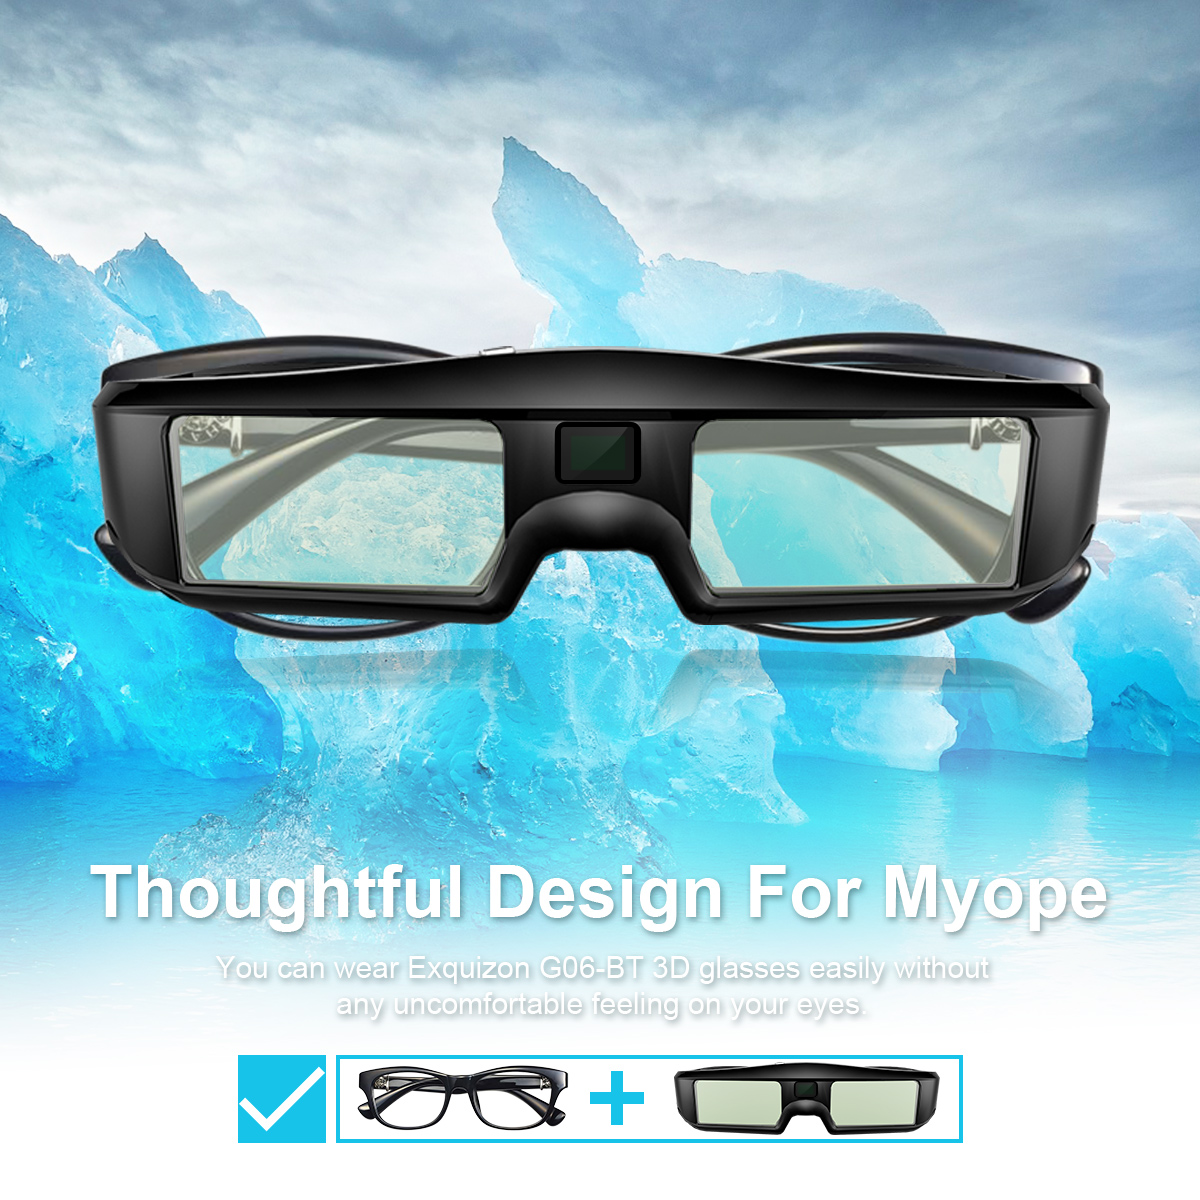 6d4b060e20 Exquizon G06 - BT 120Hz Active Shutter 3D Glasses Rechargeable Lightweight  1 Pair Selling For All